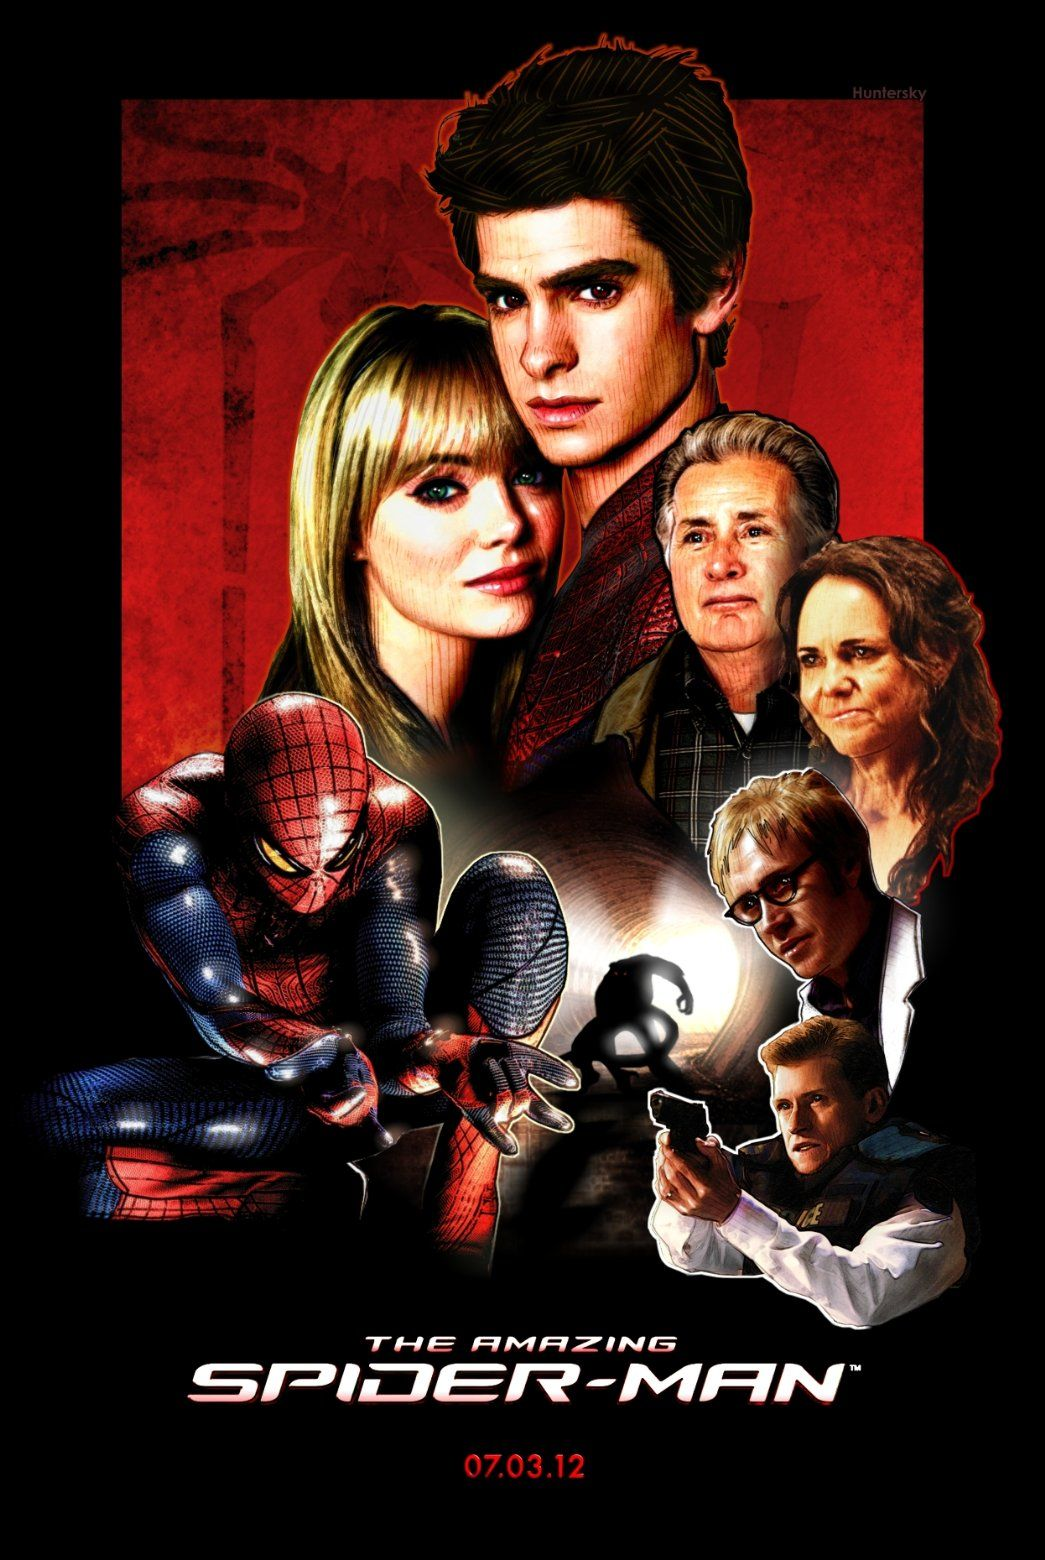 the amazing spider-man fan movie poster | tv, movies, books, music